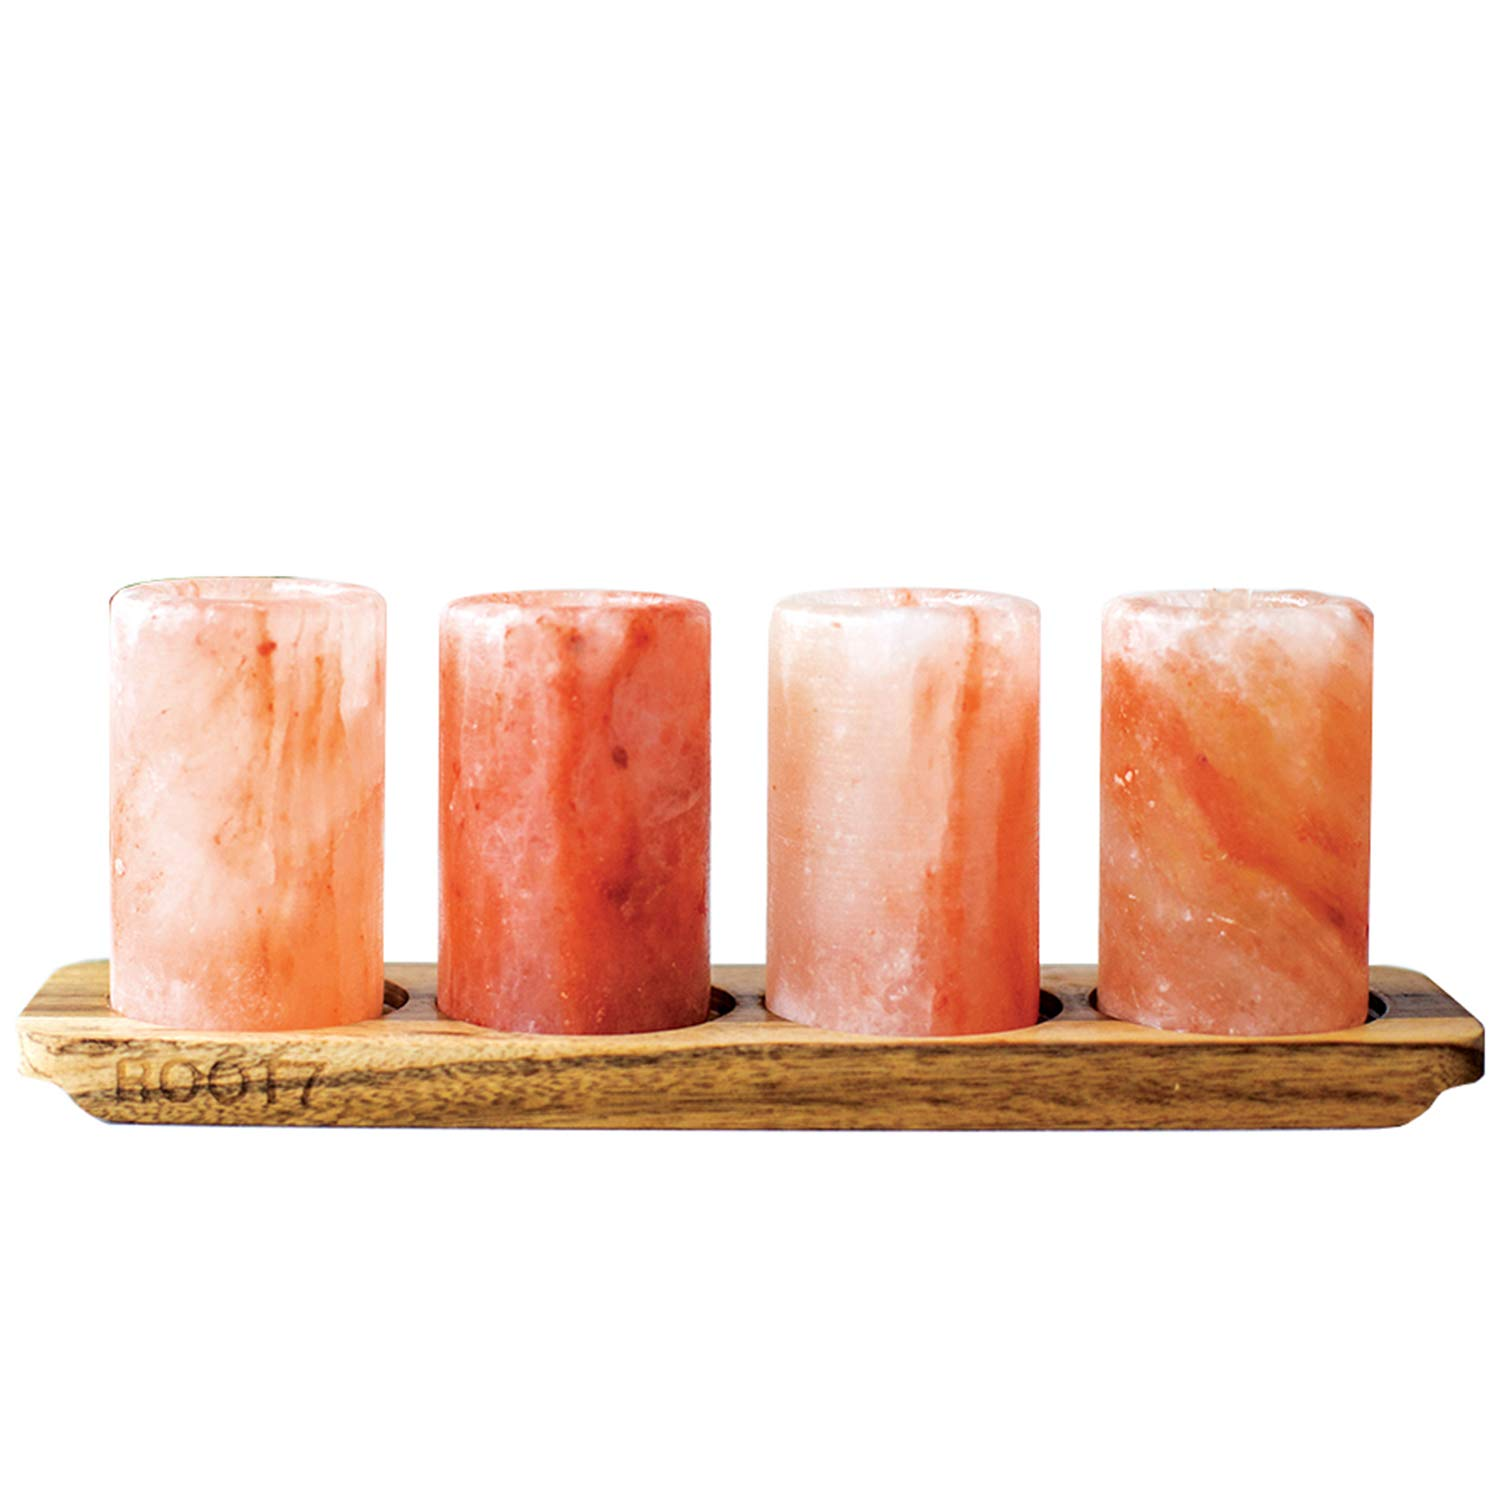 3'' Himalayan Salt Shot Glasses - 4 Pack With Acacia Wood Serving Board From Root7. Set Of 4 Salt Shot Tequila Glasses. FDA Approved Ethically Sourced 100% Natural Himalayan Salt. by Root7